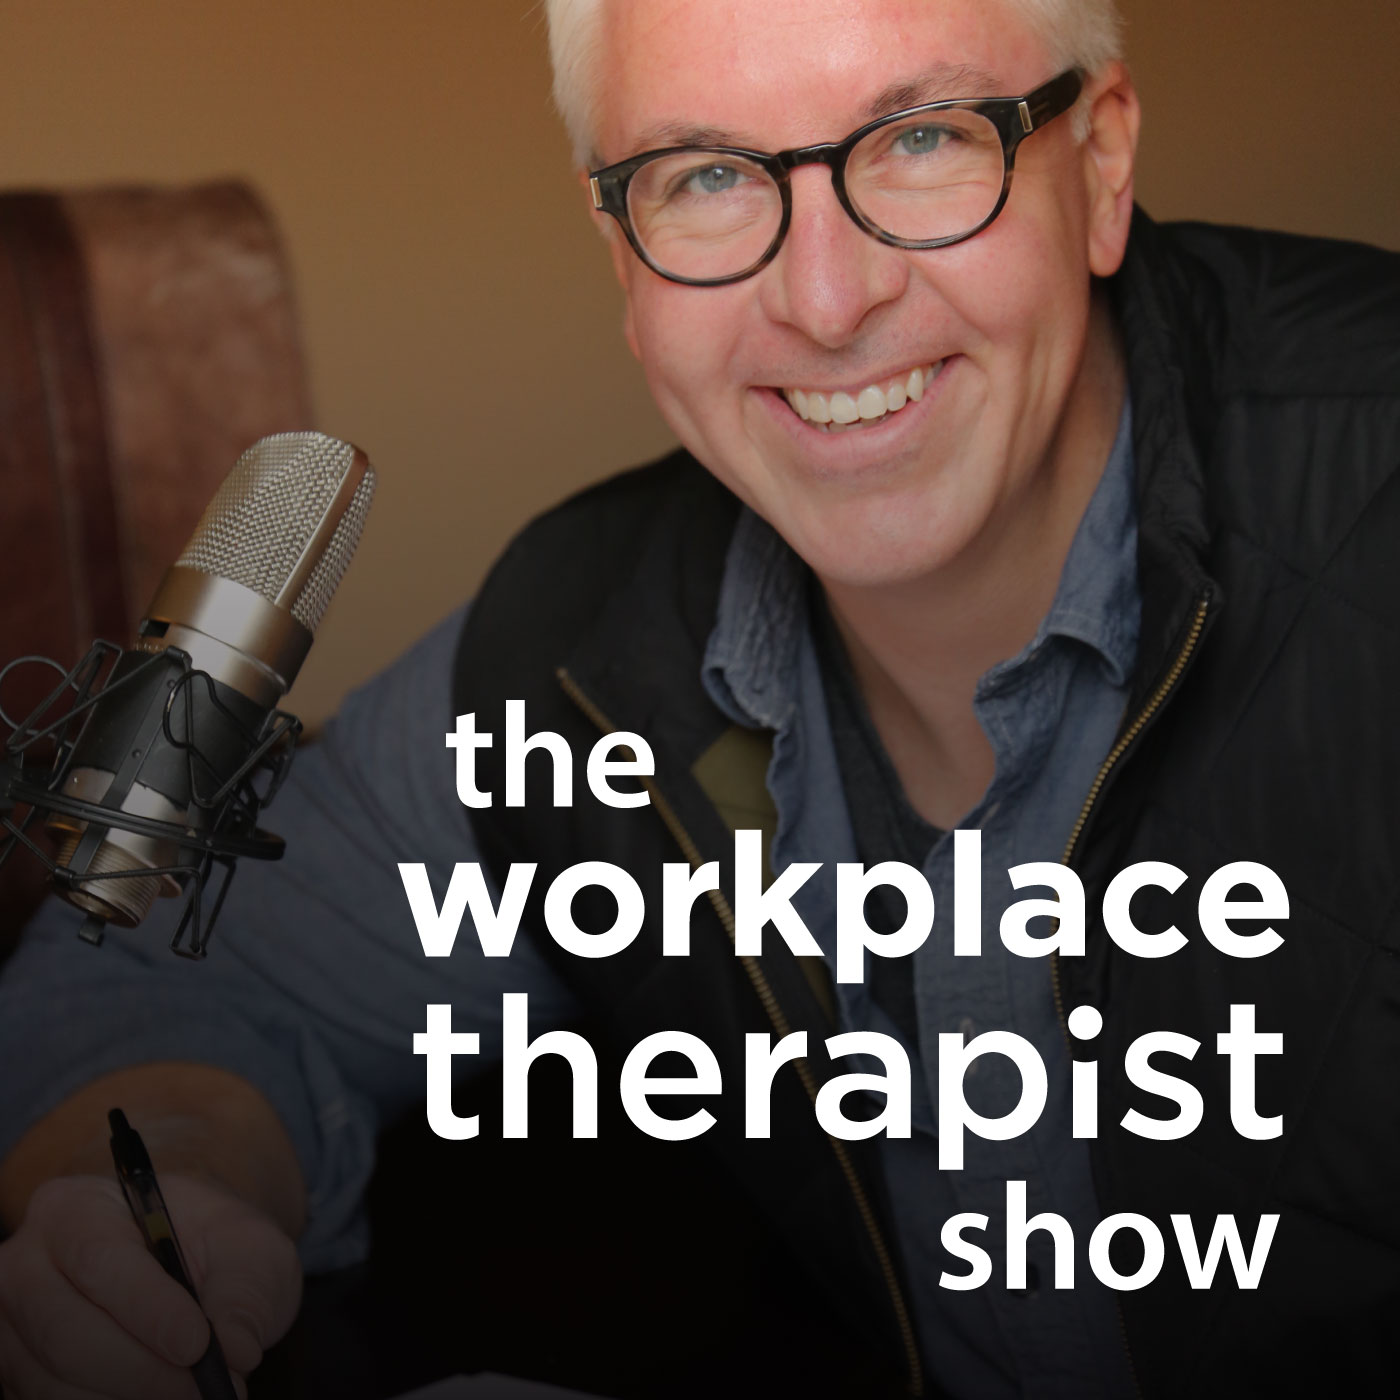 The Workplace Therapist Show show art